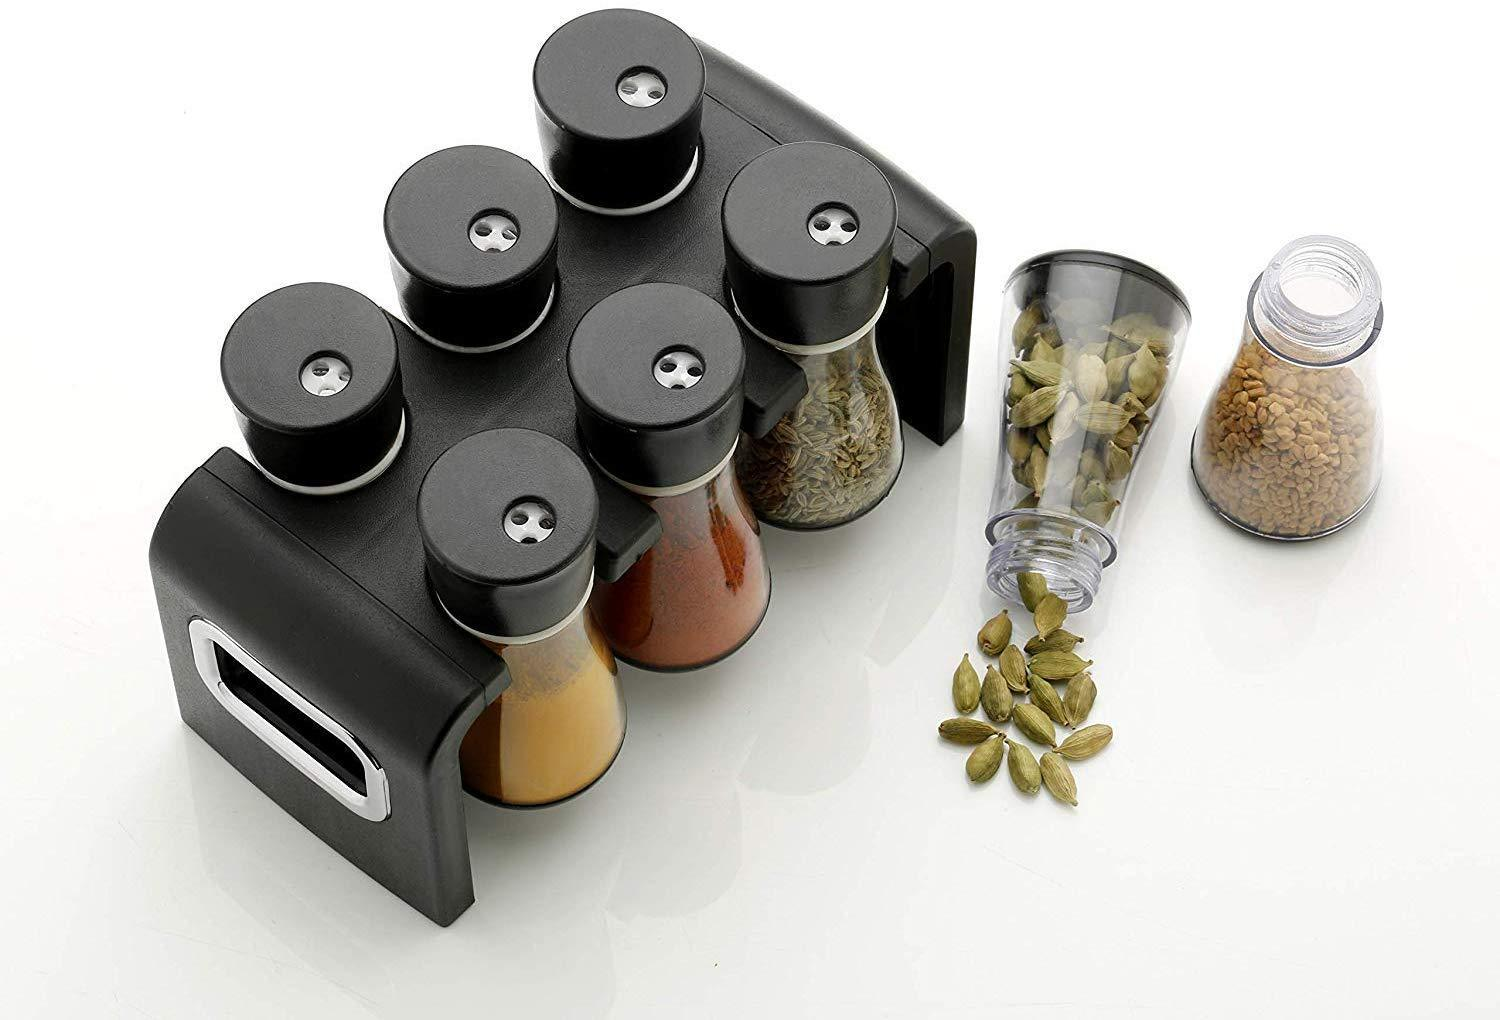 Spice Jars & Racks